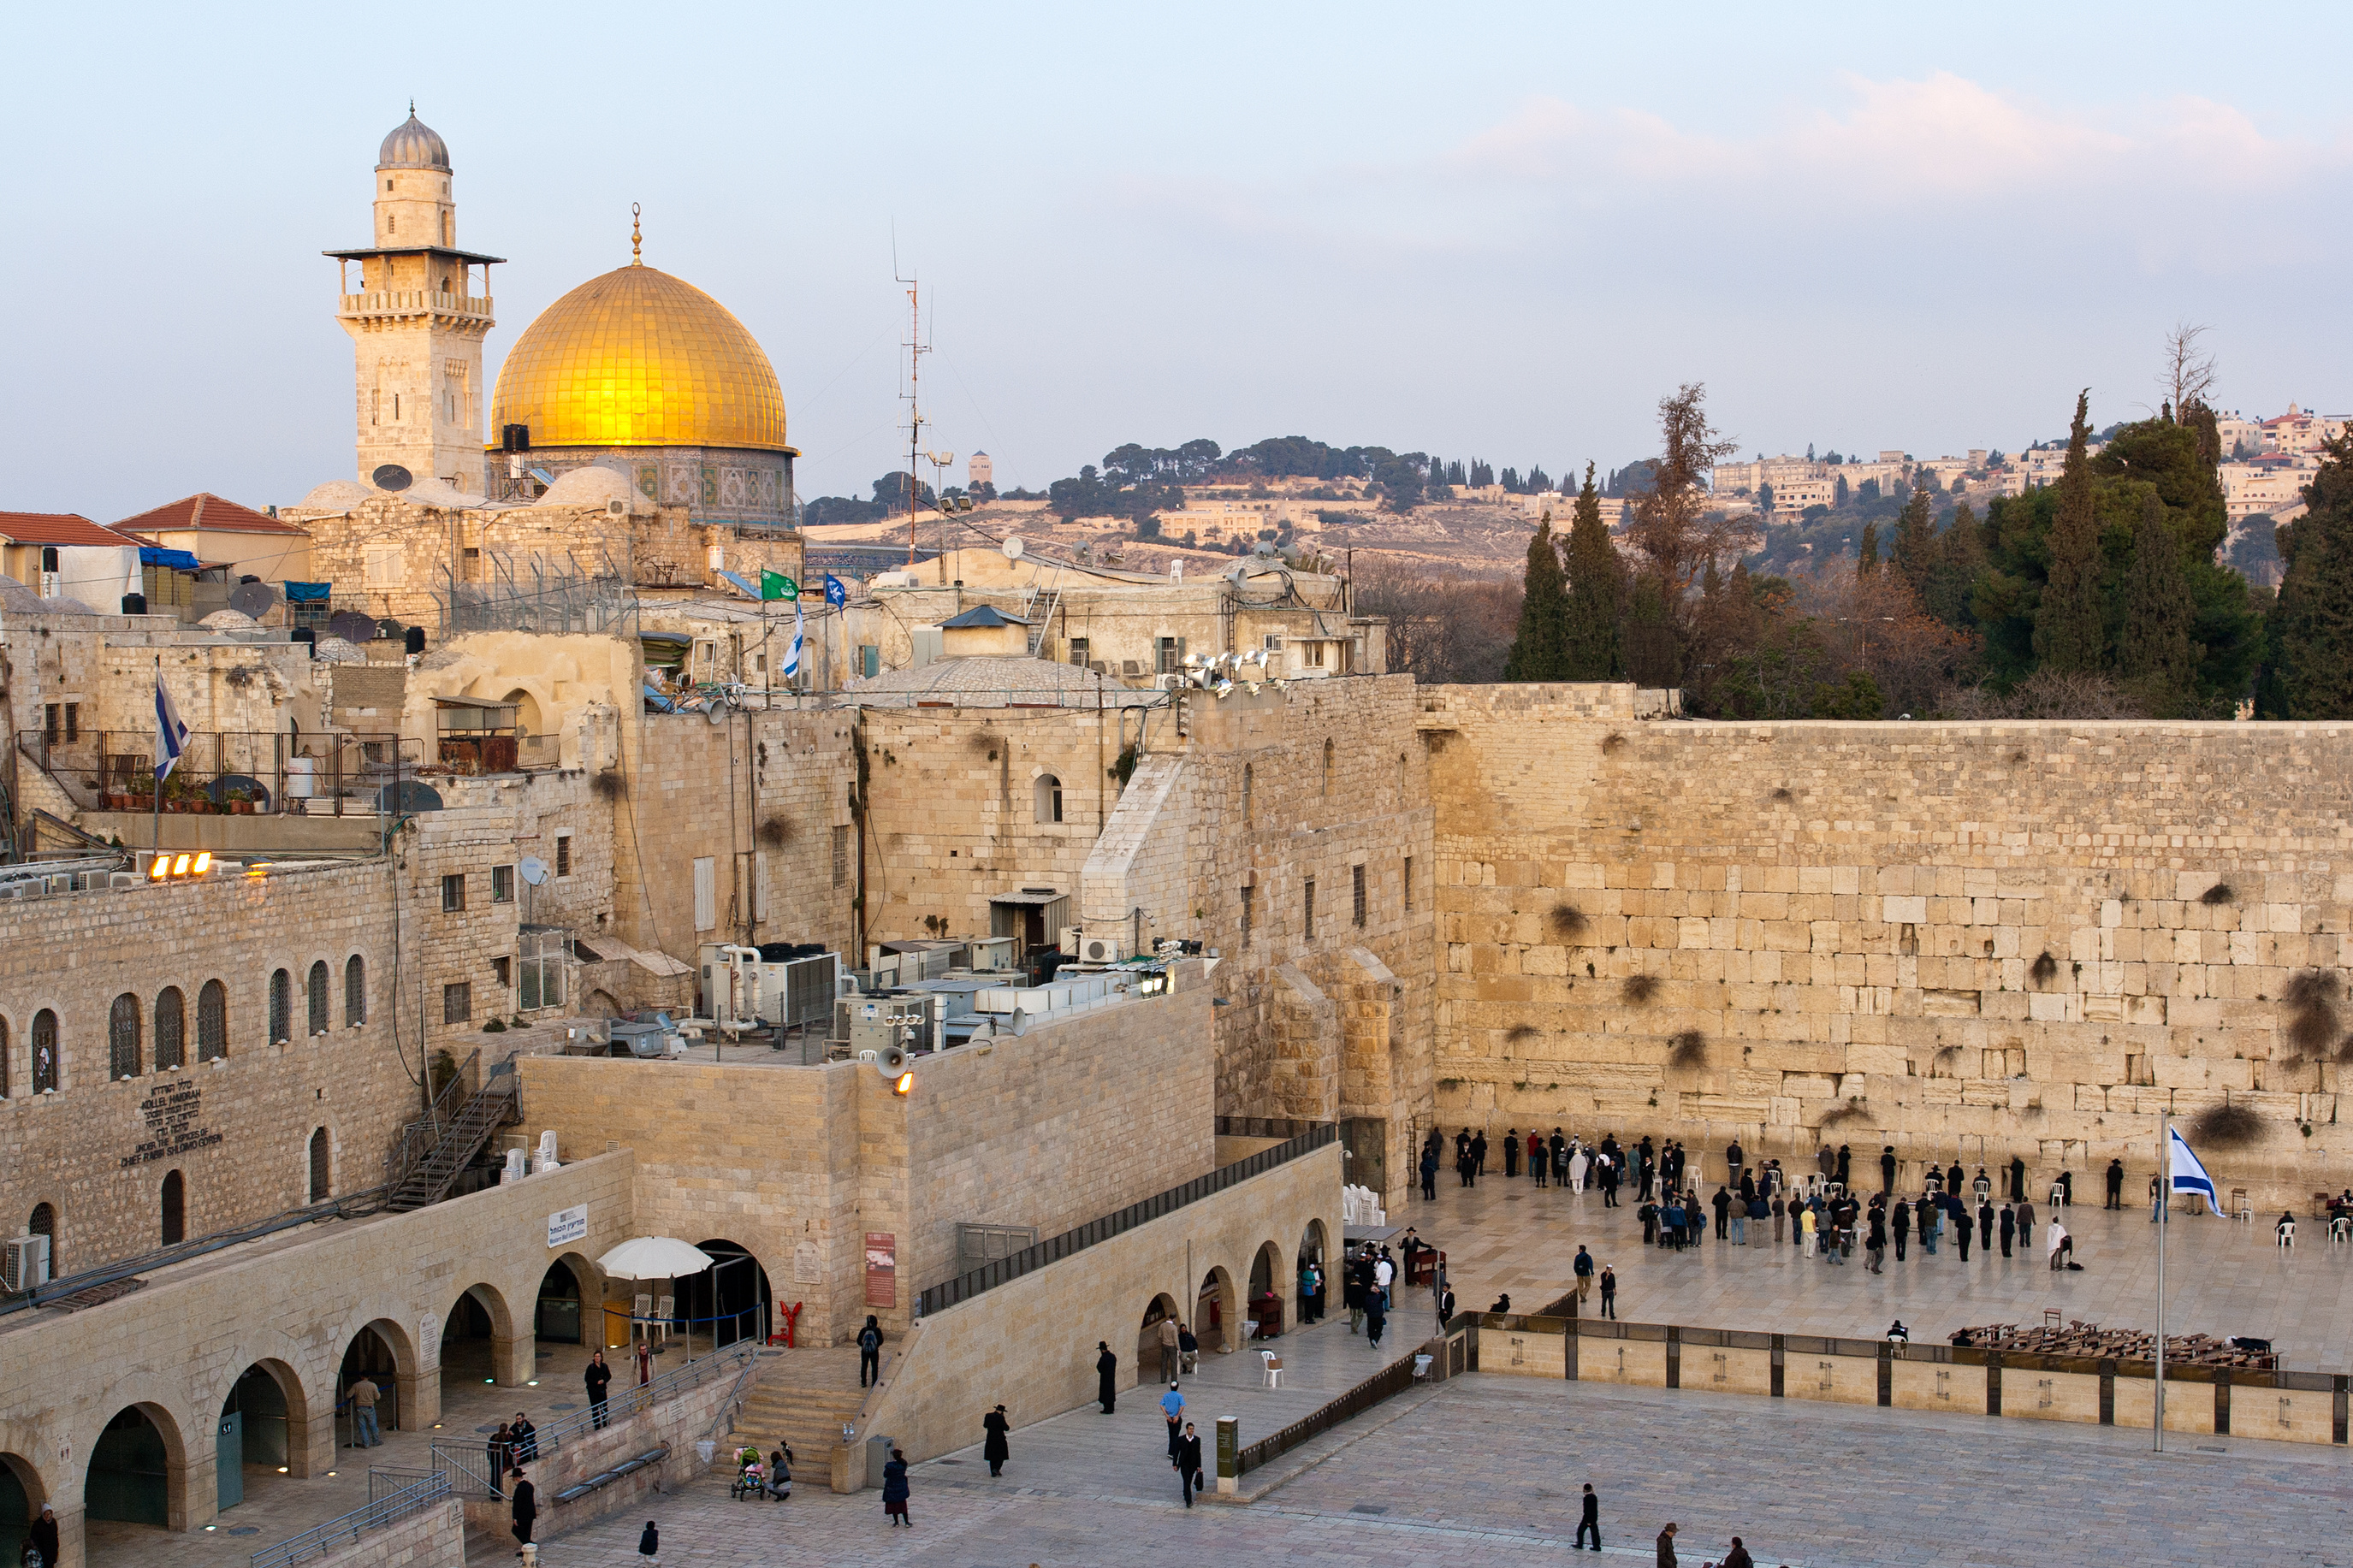 ORB/Gallup International Global Attitudes Poll: Trump's Decision on Jerusalem